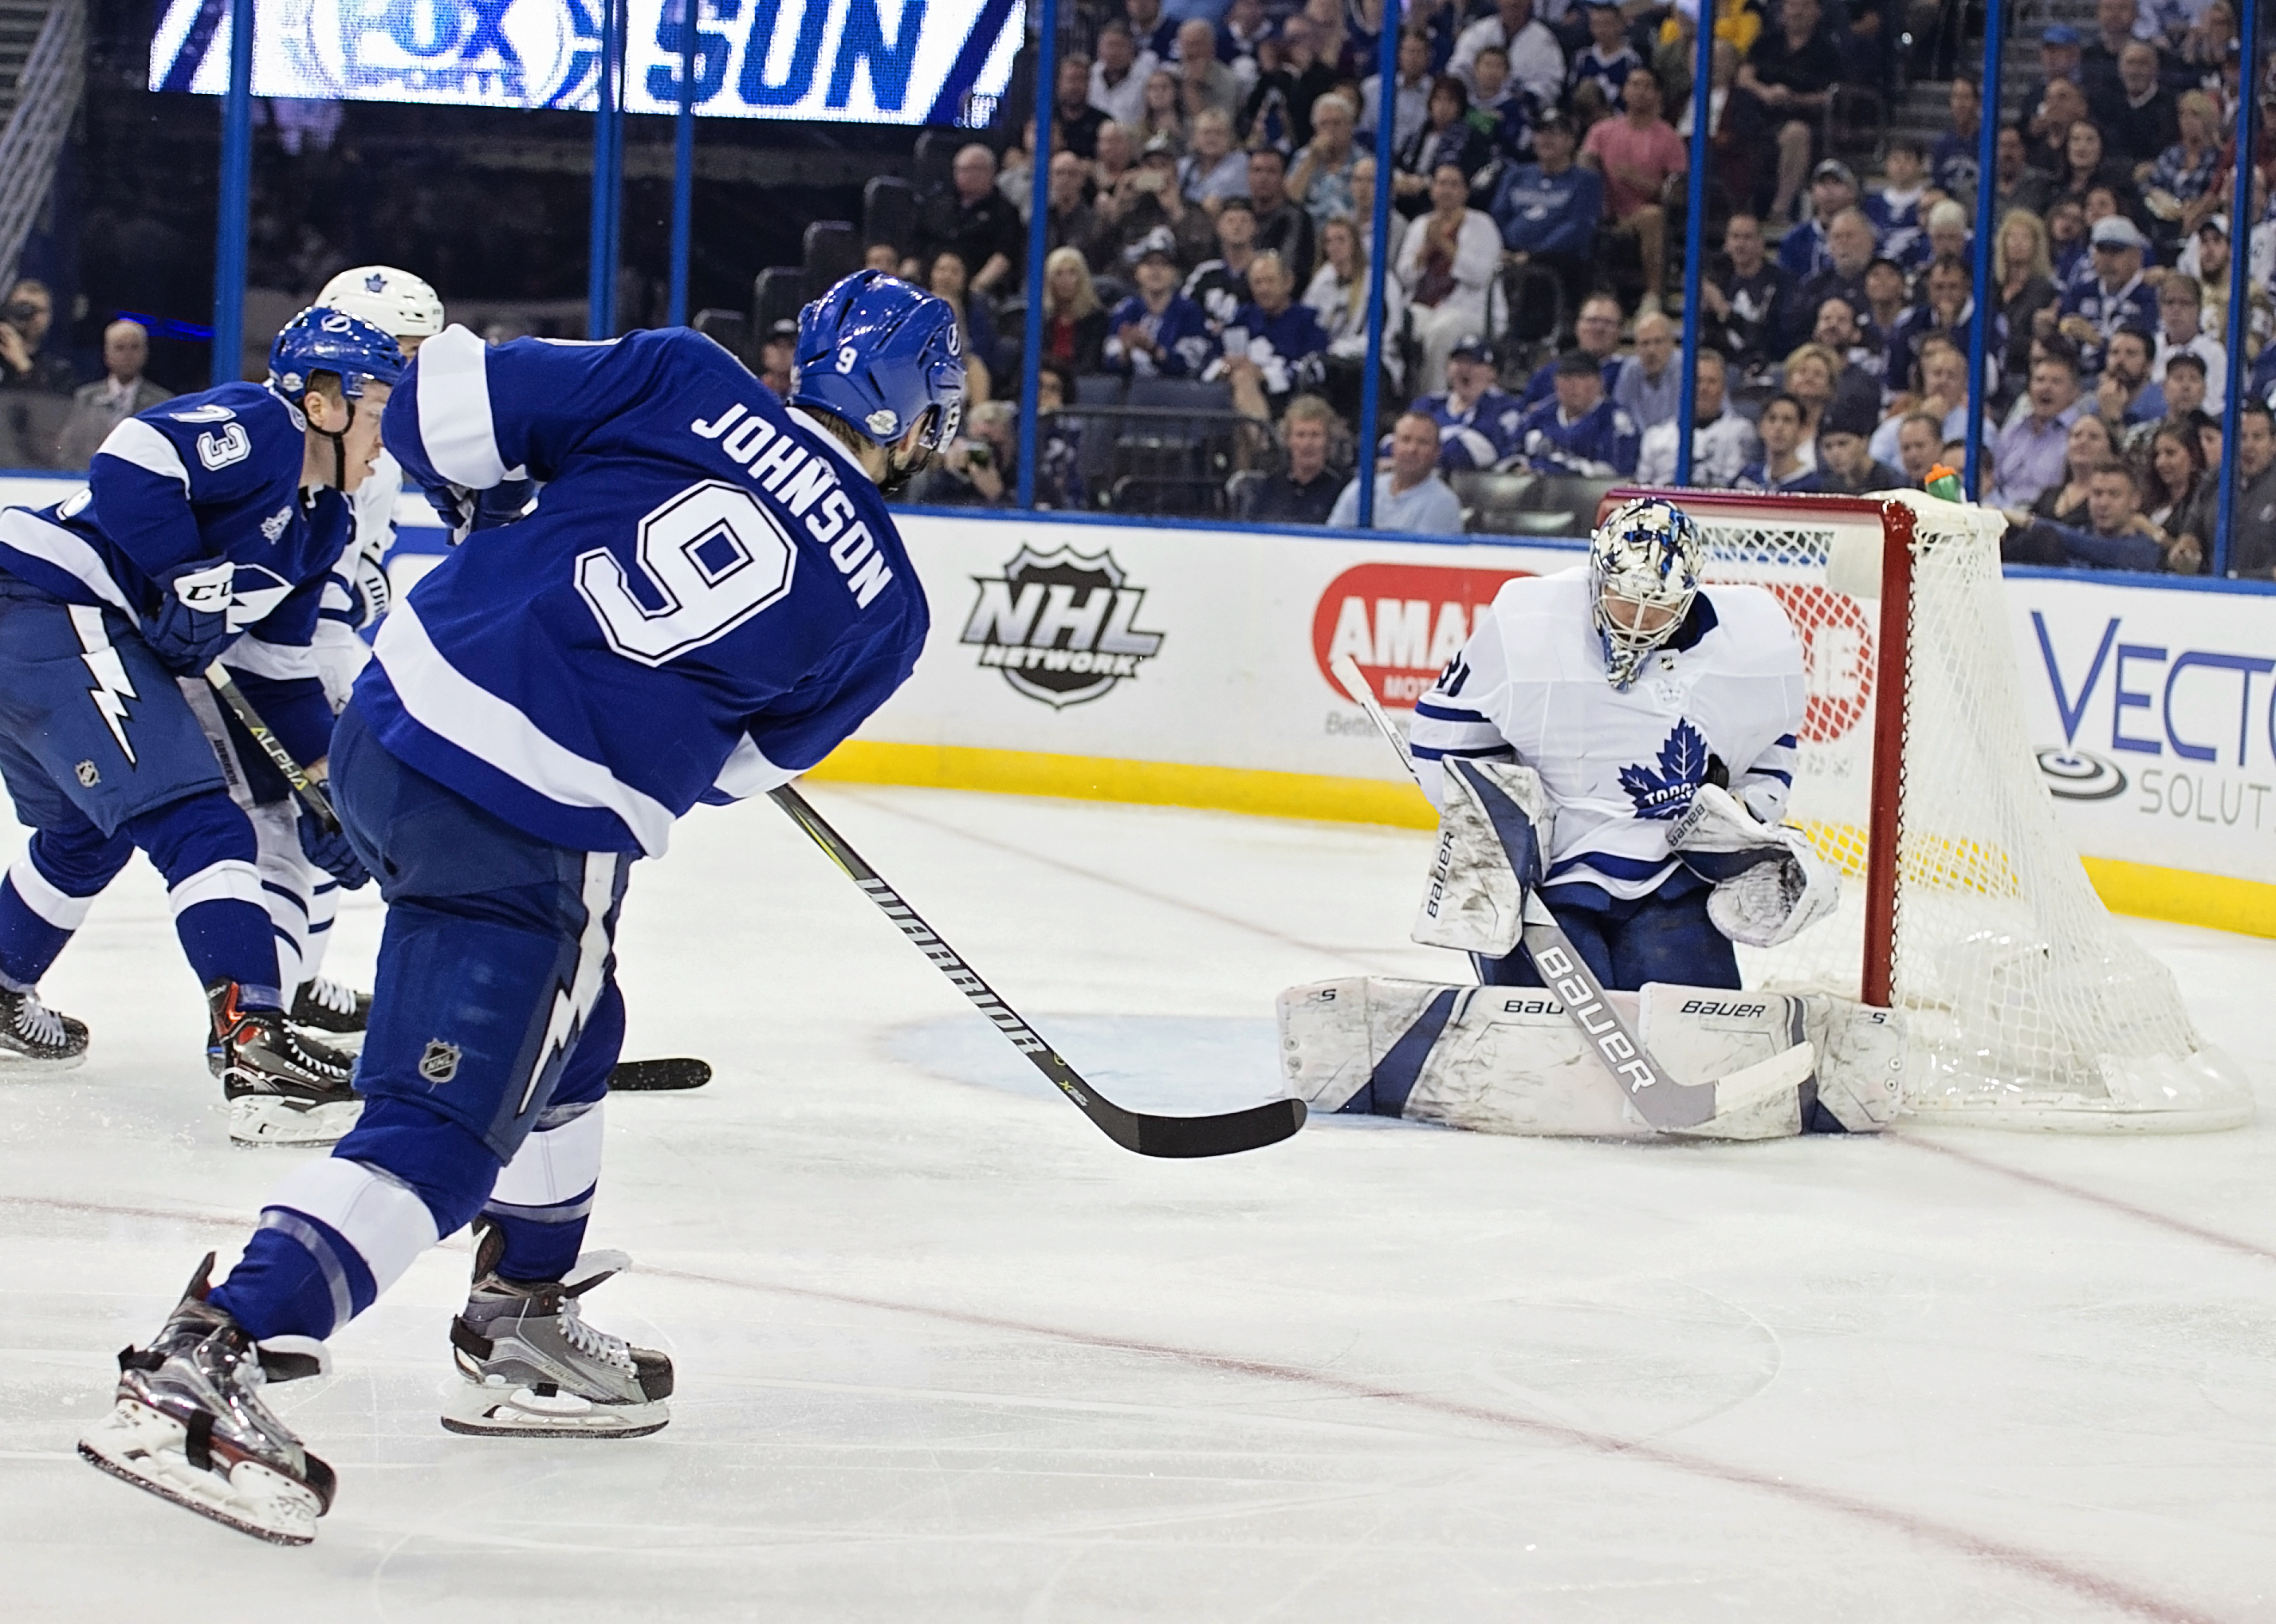 Tyler Johnson puts a shot on net for Bolts./CARMEN MANDATO